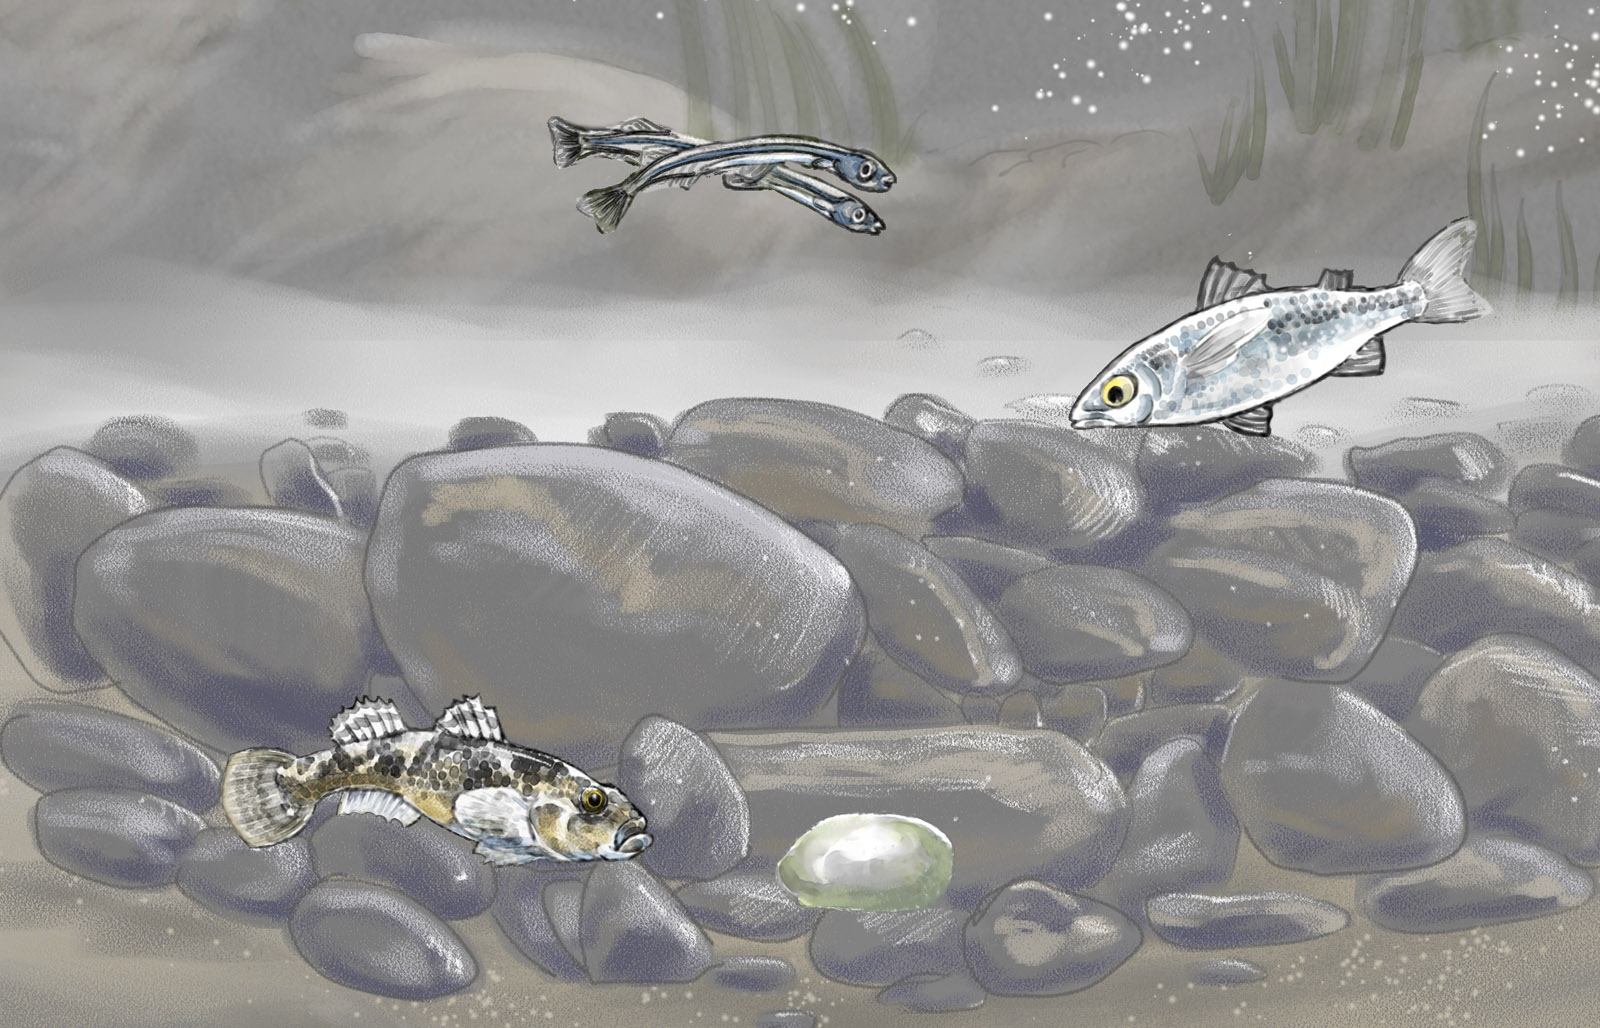 Painted fish of the Avon, number 2